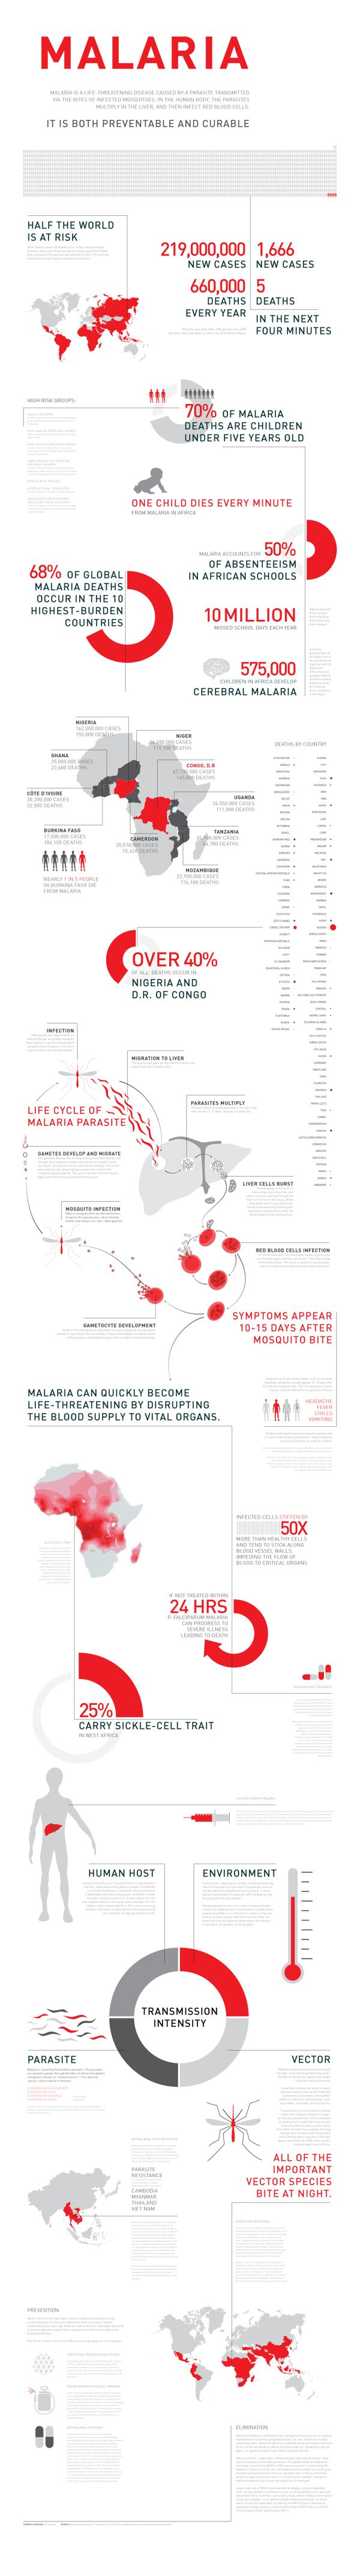 Malaria Infographic by Lily Campbell, via Behance. Shows how much more severe and condensed the disease is in regions of Africa.